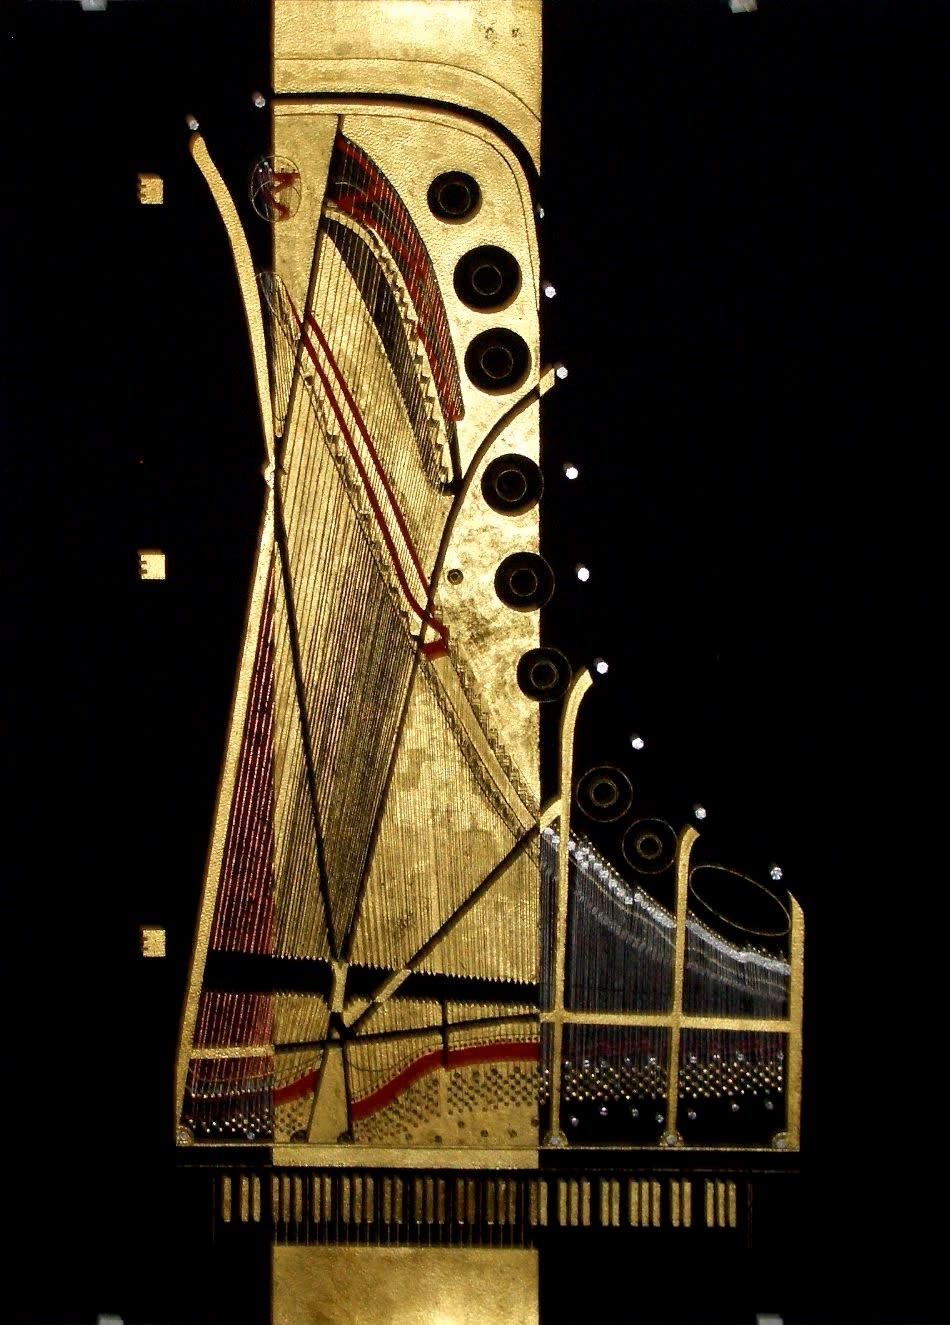 Golden piano painting ellen frank wet paint nyc ns5oem